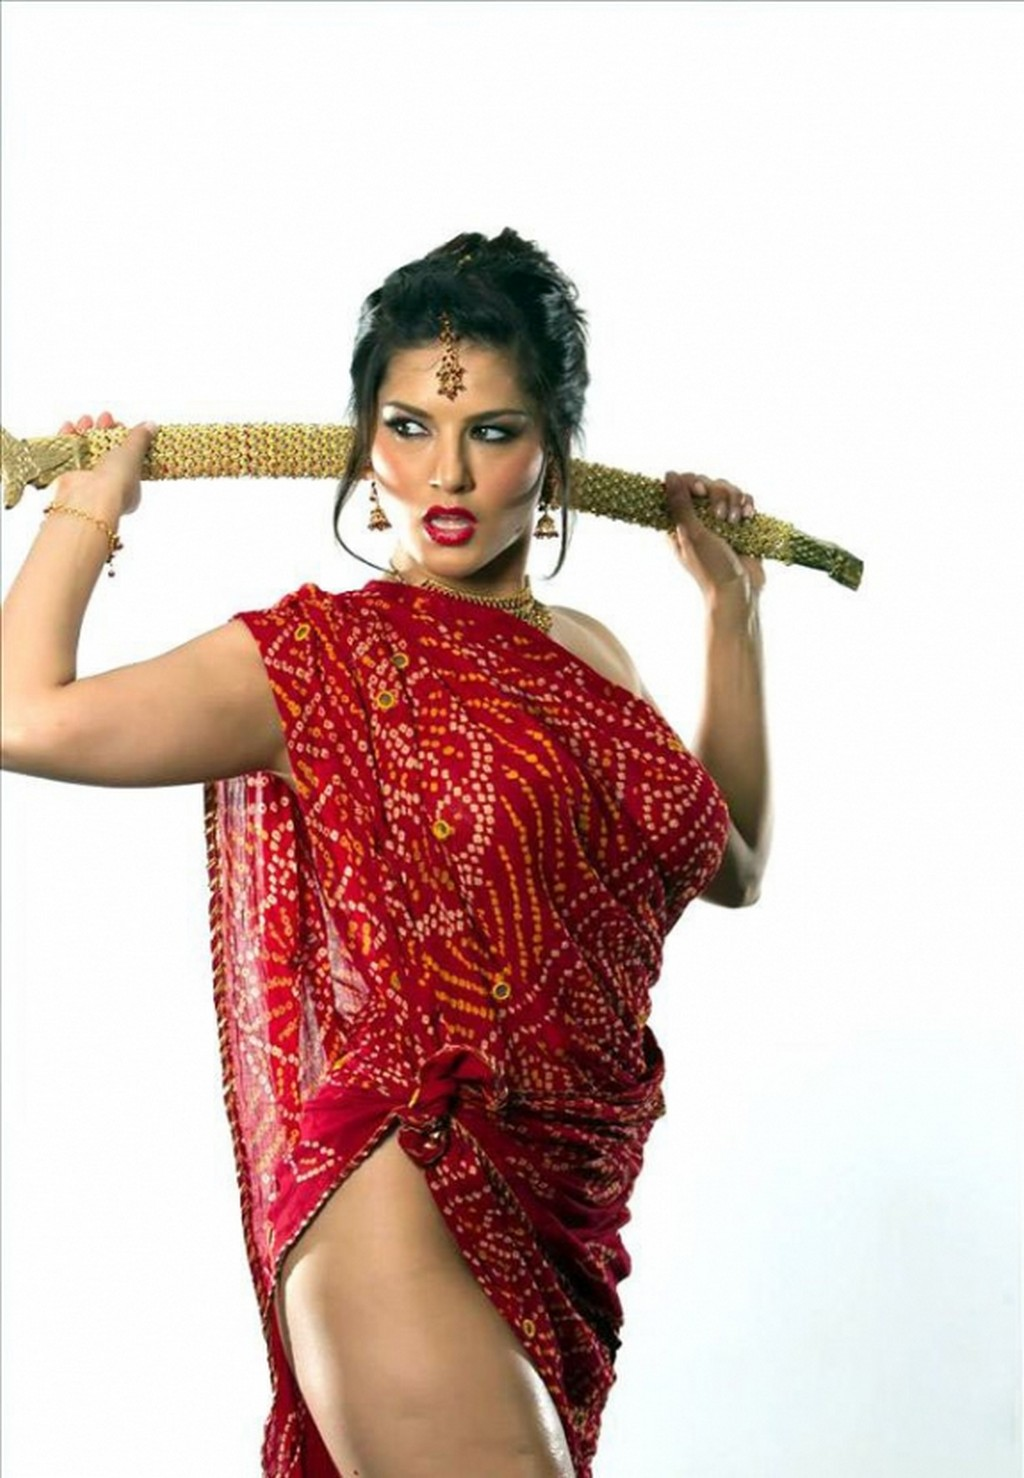 Leone Sunny Topless Oiled Up Show Big Boobs And Sword In Saree